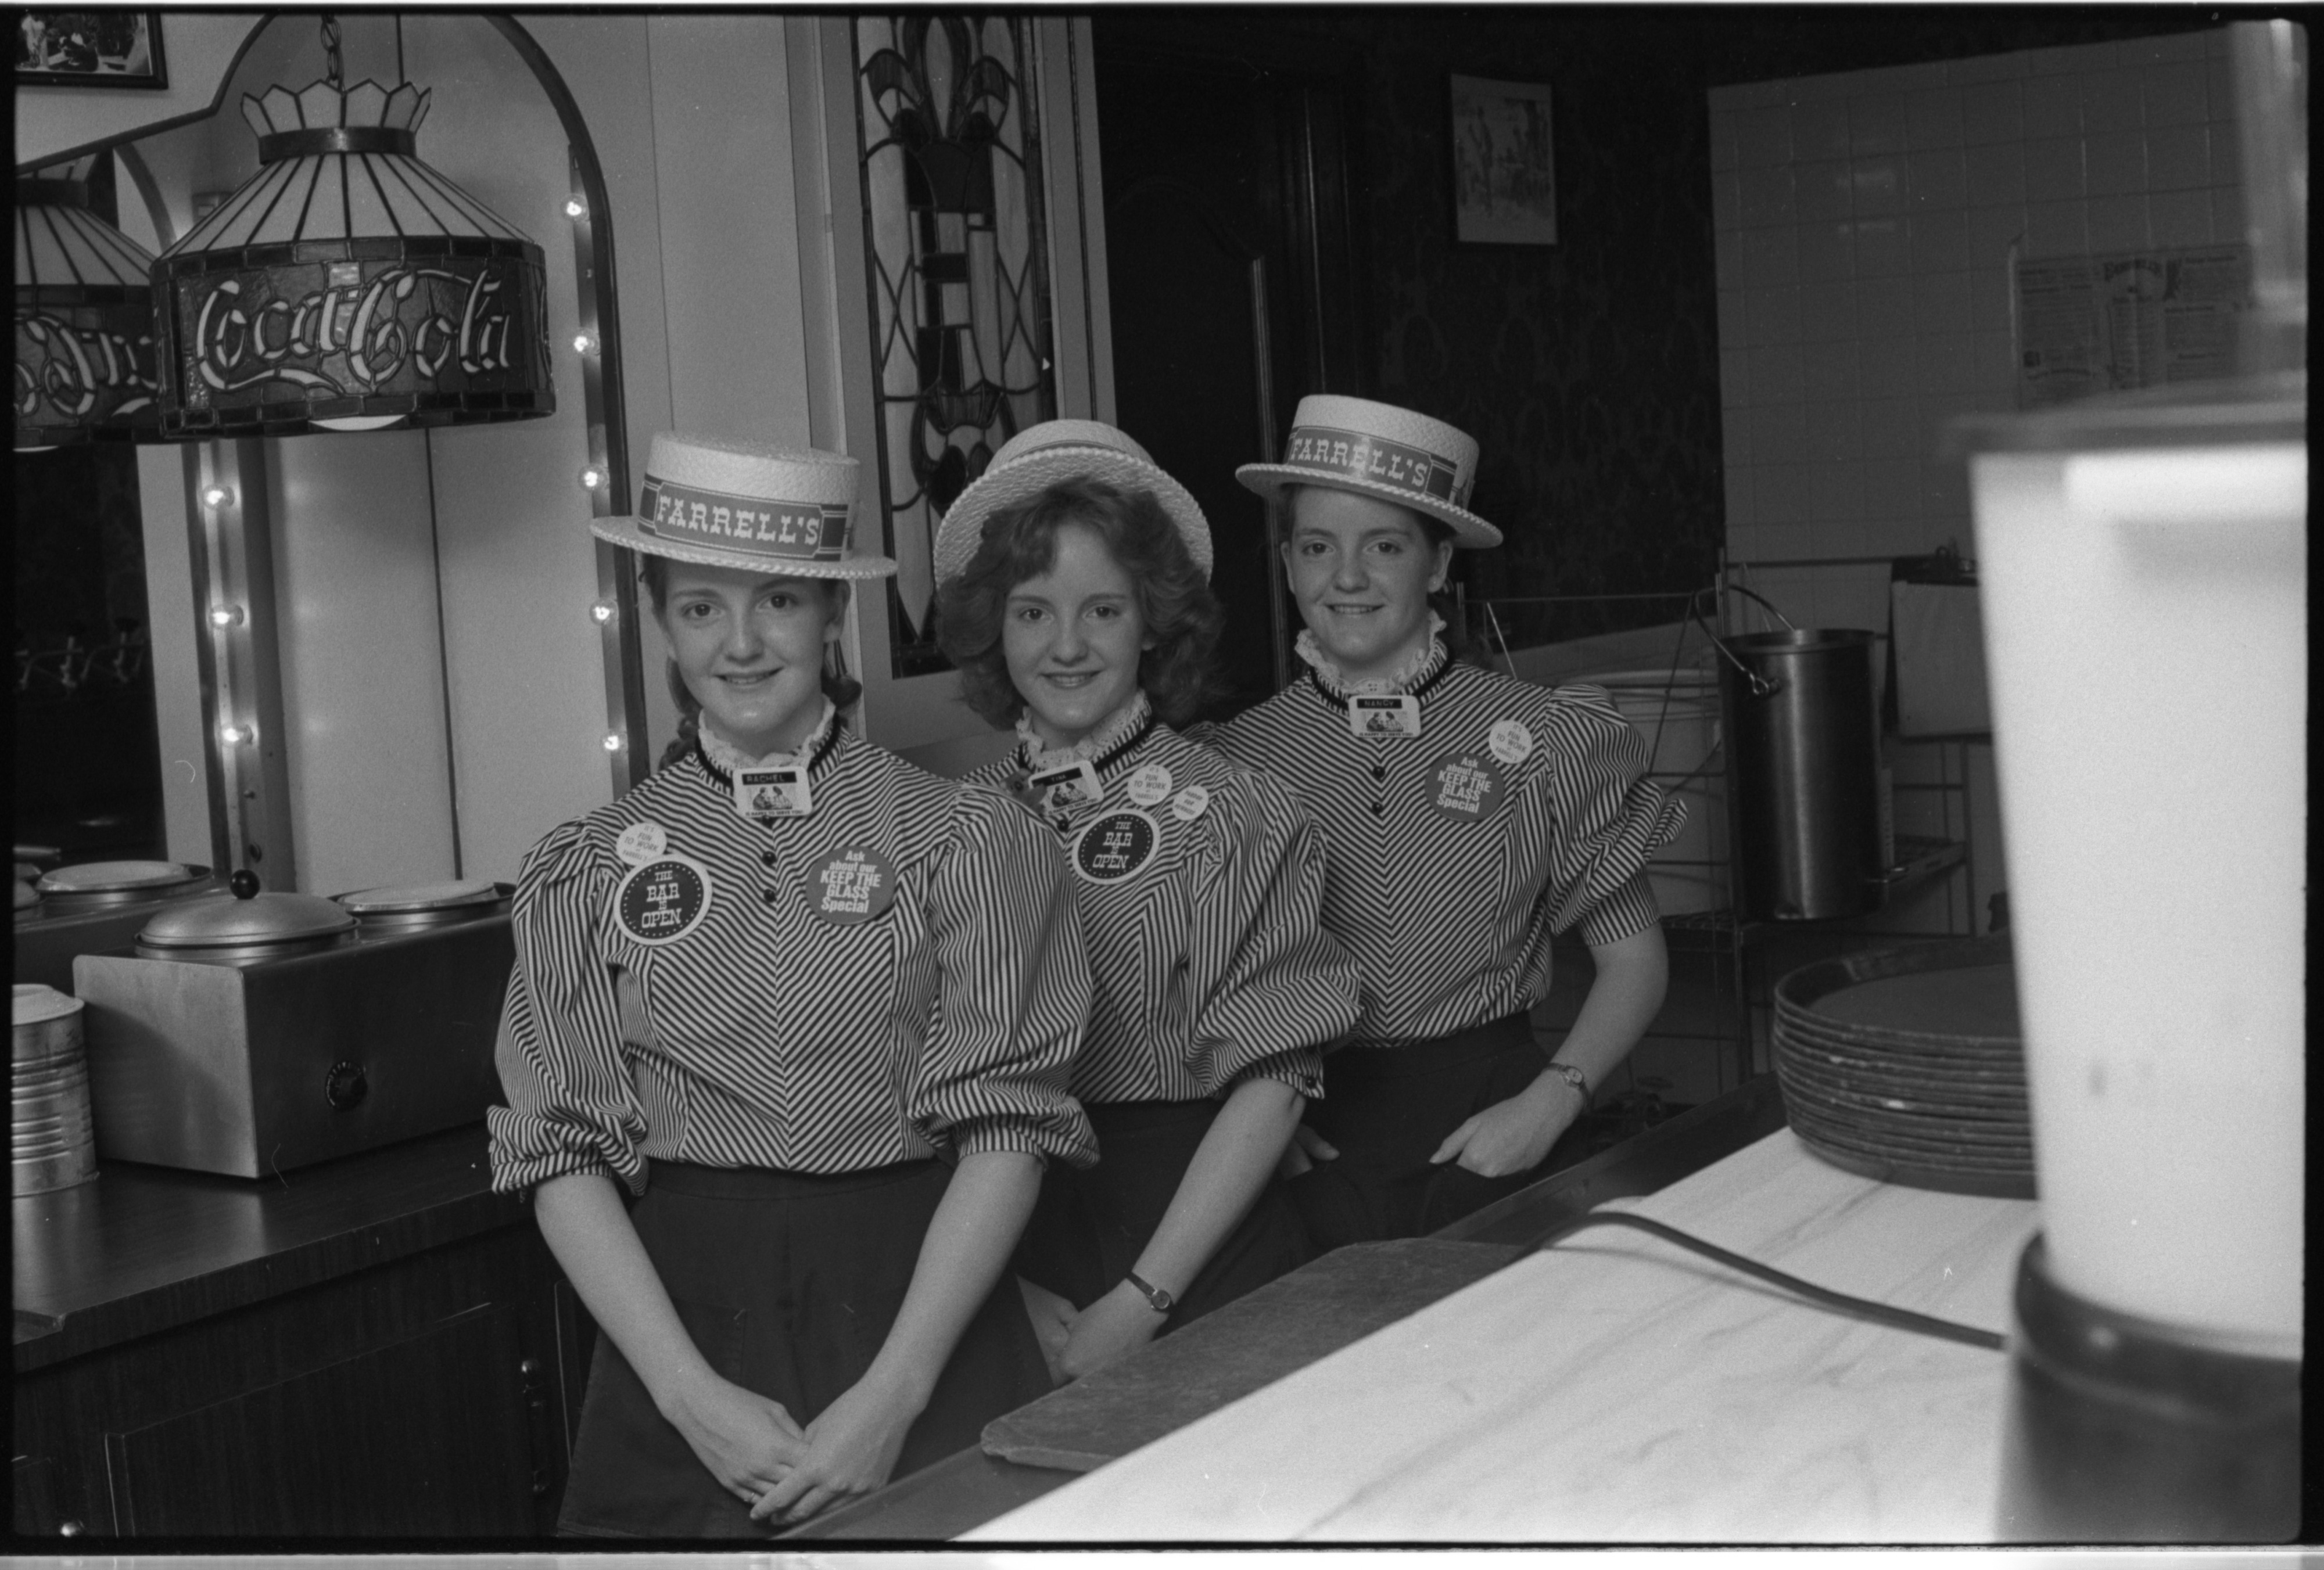 Rachel, Tina, & Nancy Legault At Farrell's Ice Cream Parlour, June 1981 image